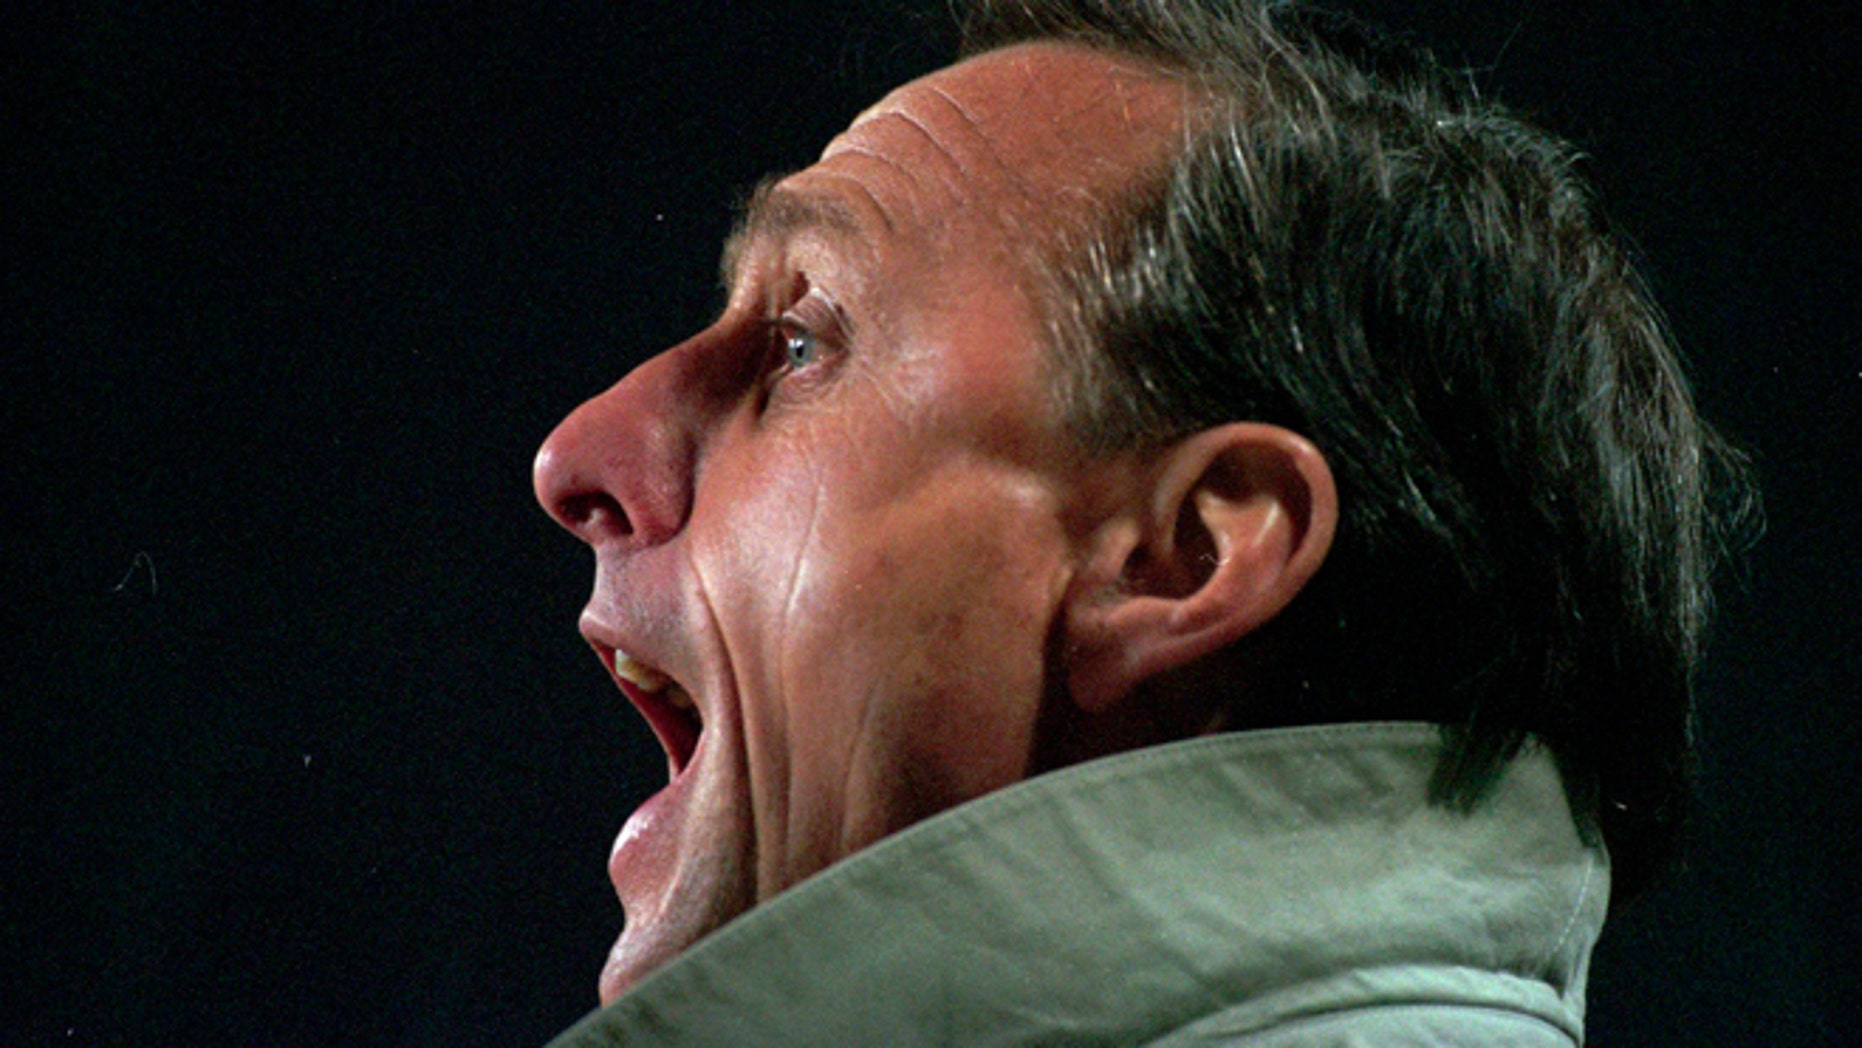 FILE - In this March 1996 file photo soccer coach Johan Cruyff shouts during a soccer match in Eindhoven, Netherlands.   Dutch soccer great Johan Cruyff has died in Barcelona on Thursday, March 24, 2016 at the age of 68.  (AP Photo/Peter Dejong, File)